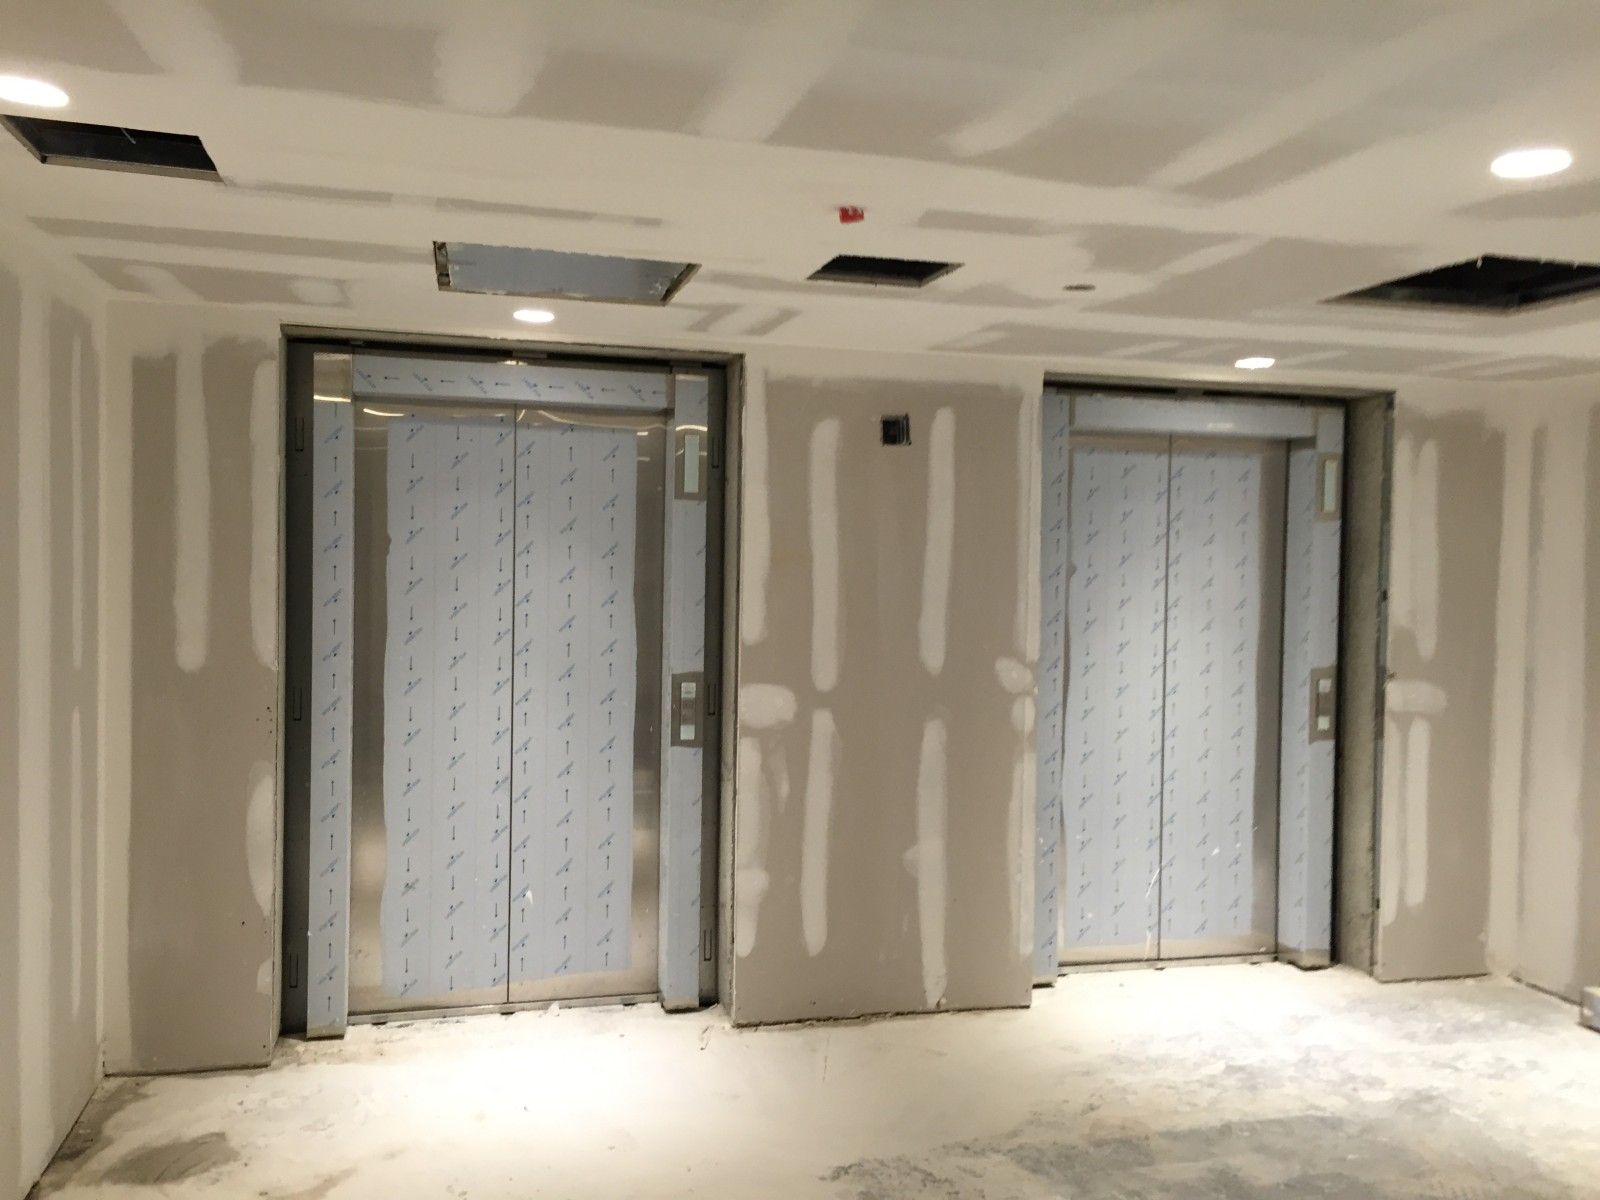 Soon-to-be Disco Elevators